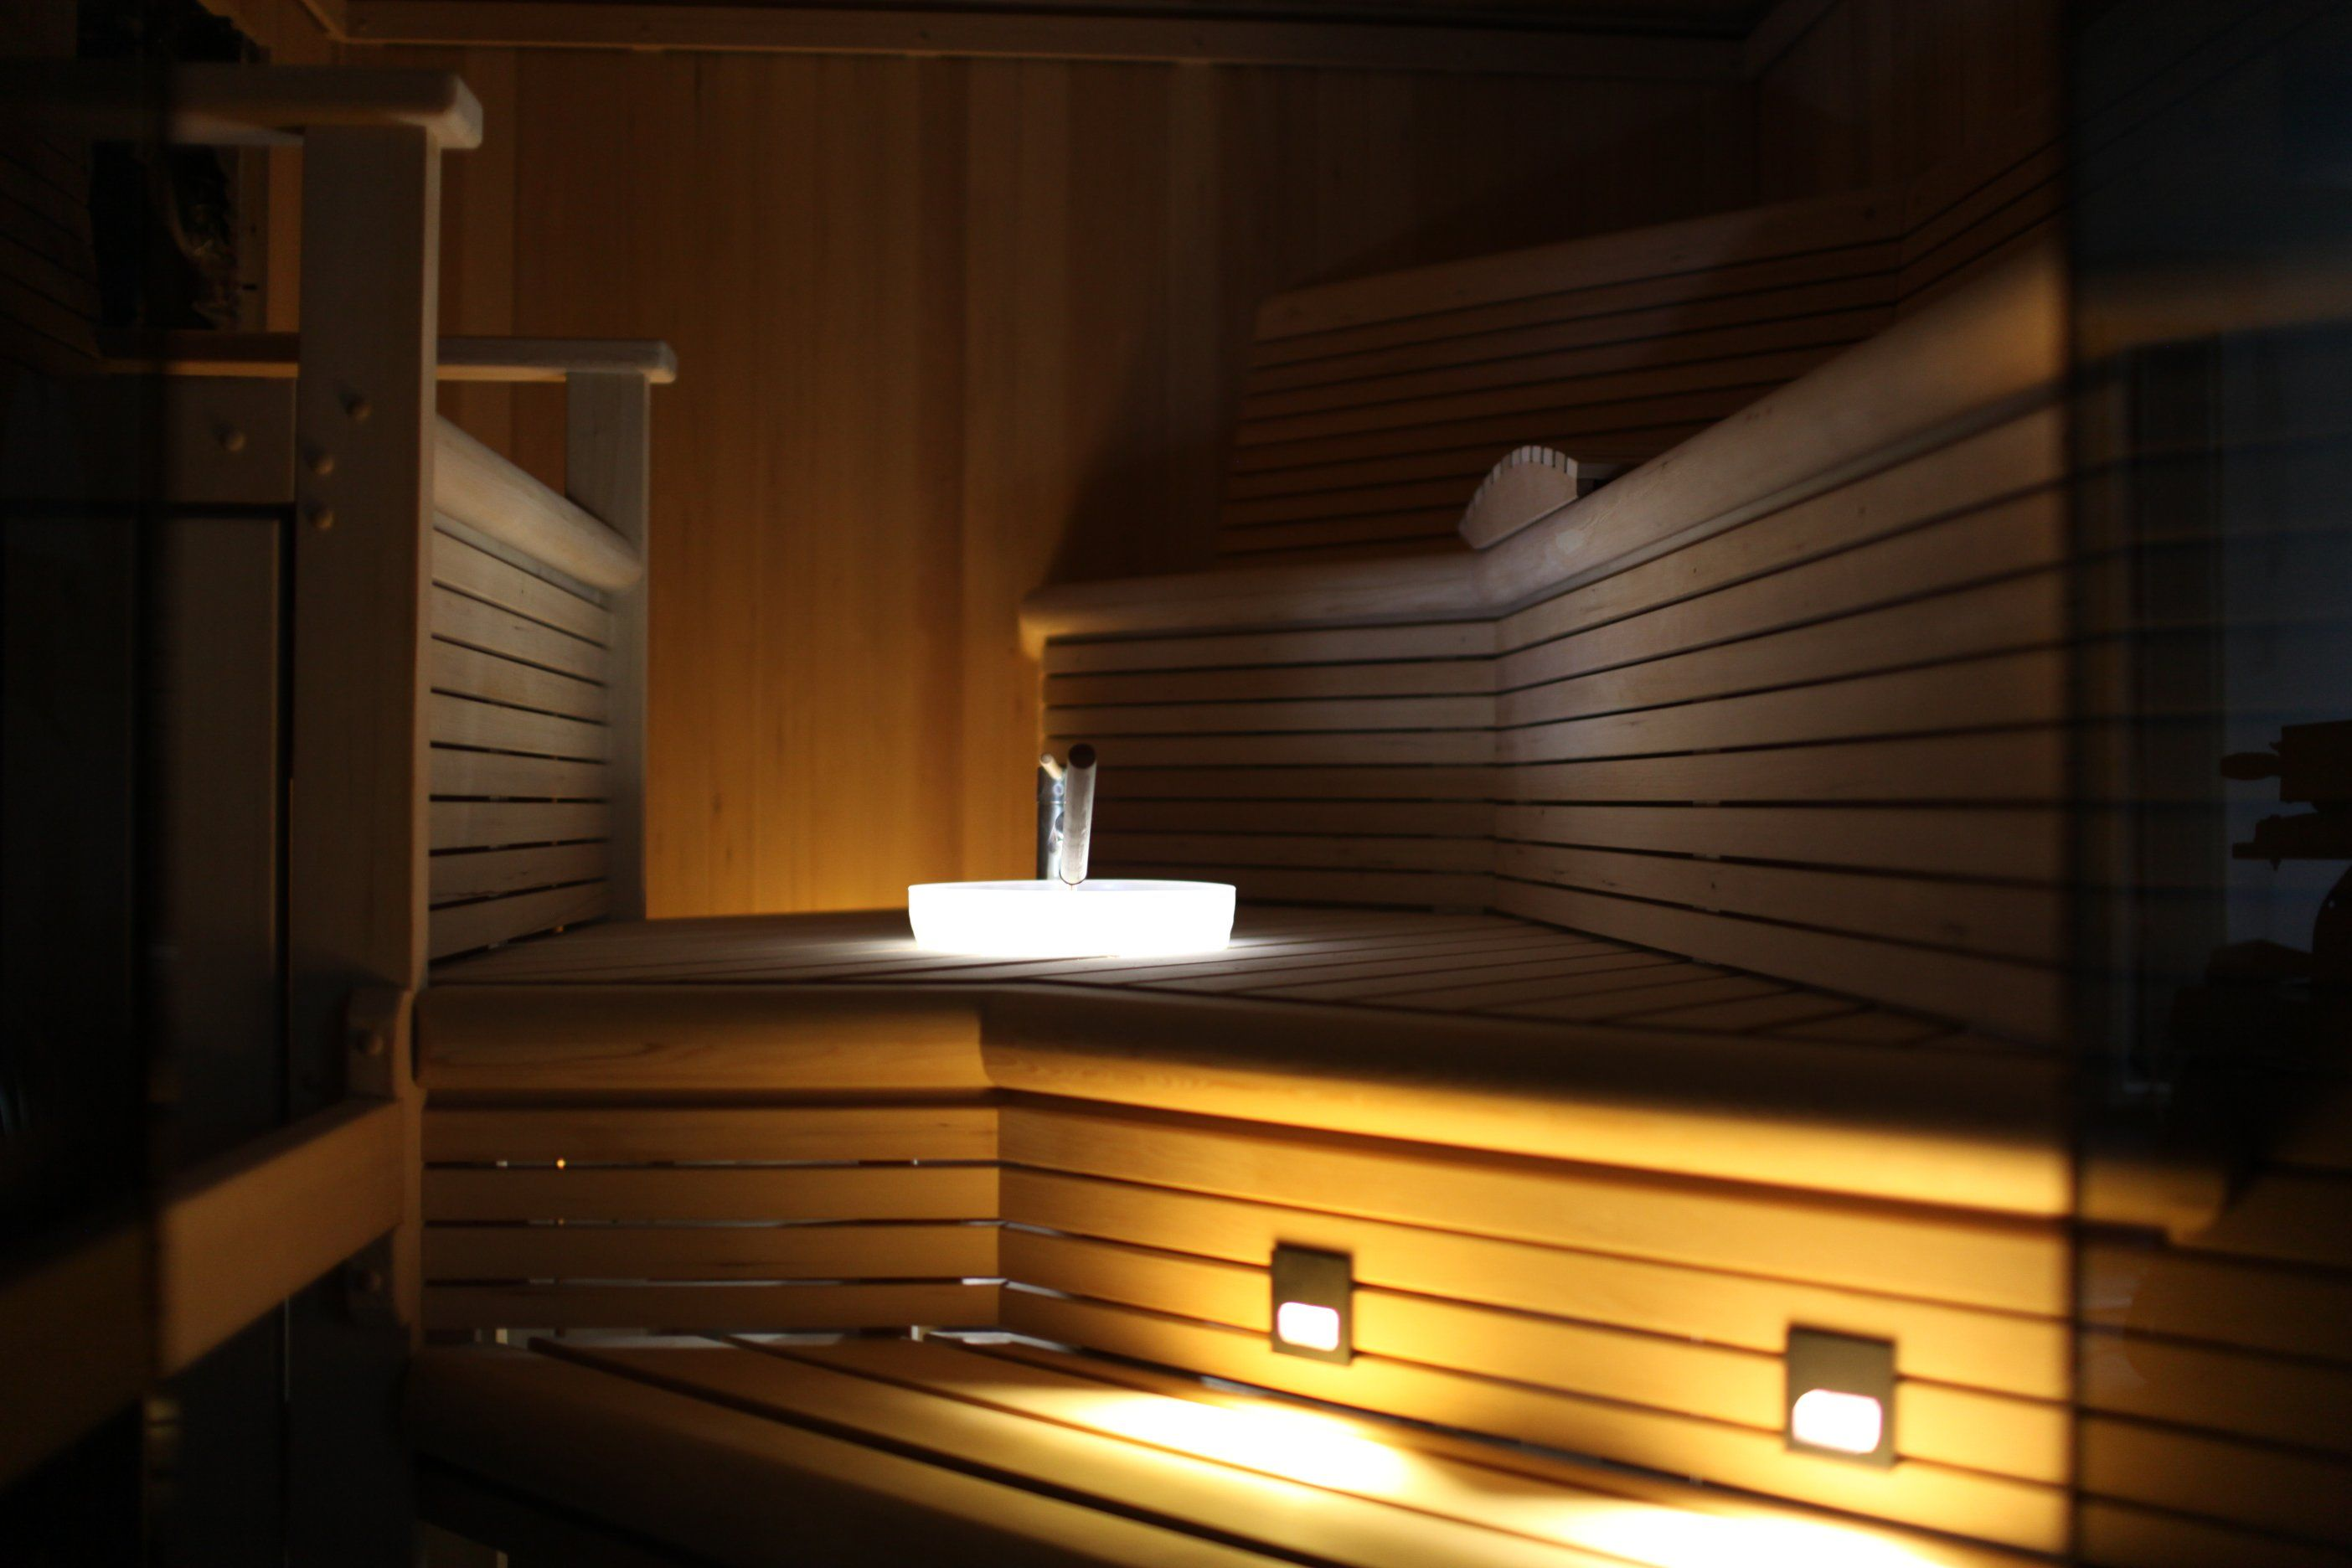 Custom Bathroom Vanities Staten Island custom sauna on staten island, with custom lighting and sink